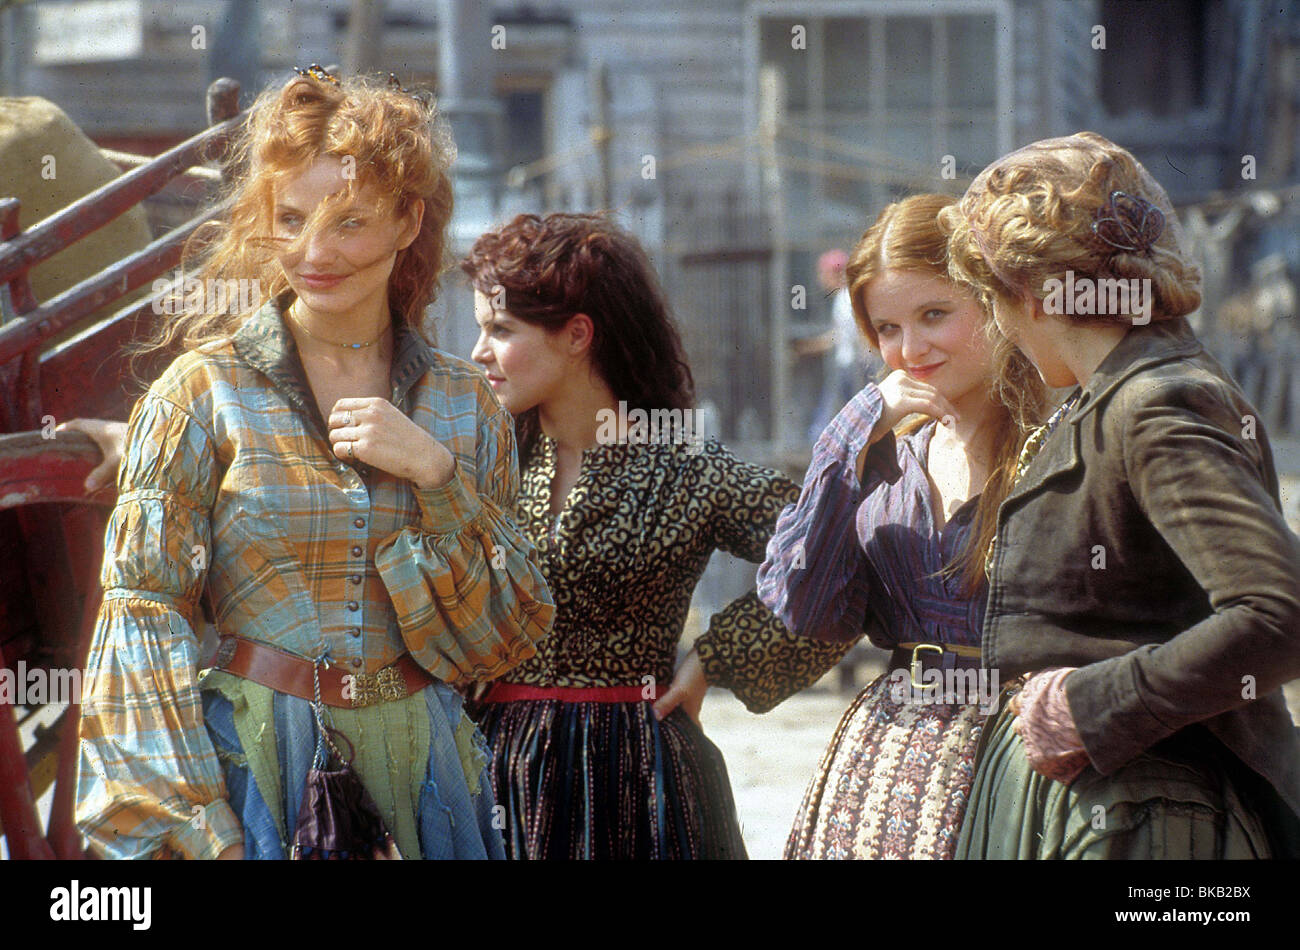 Gangs Of New York 2002 Cameron Diaz Gony 005 Stock Photo 29132206